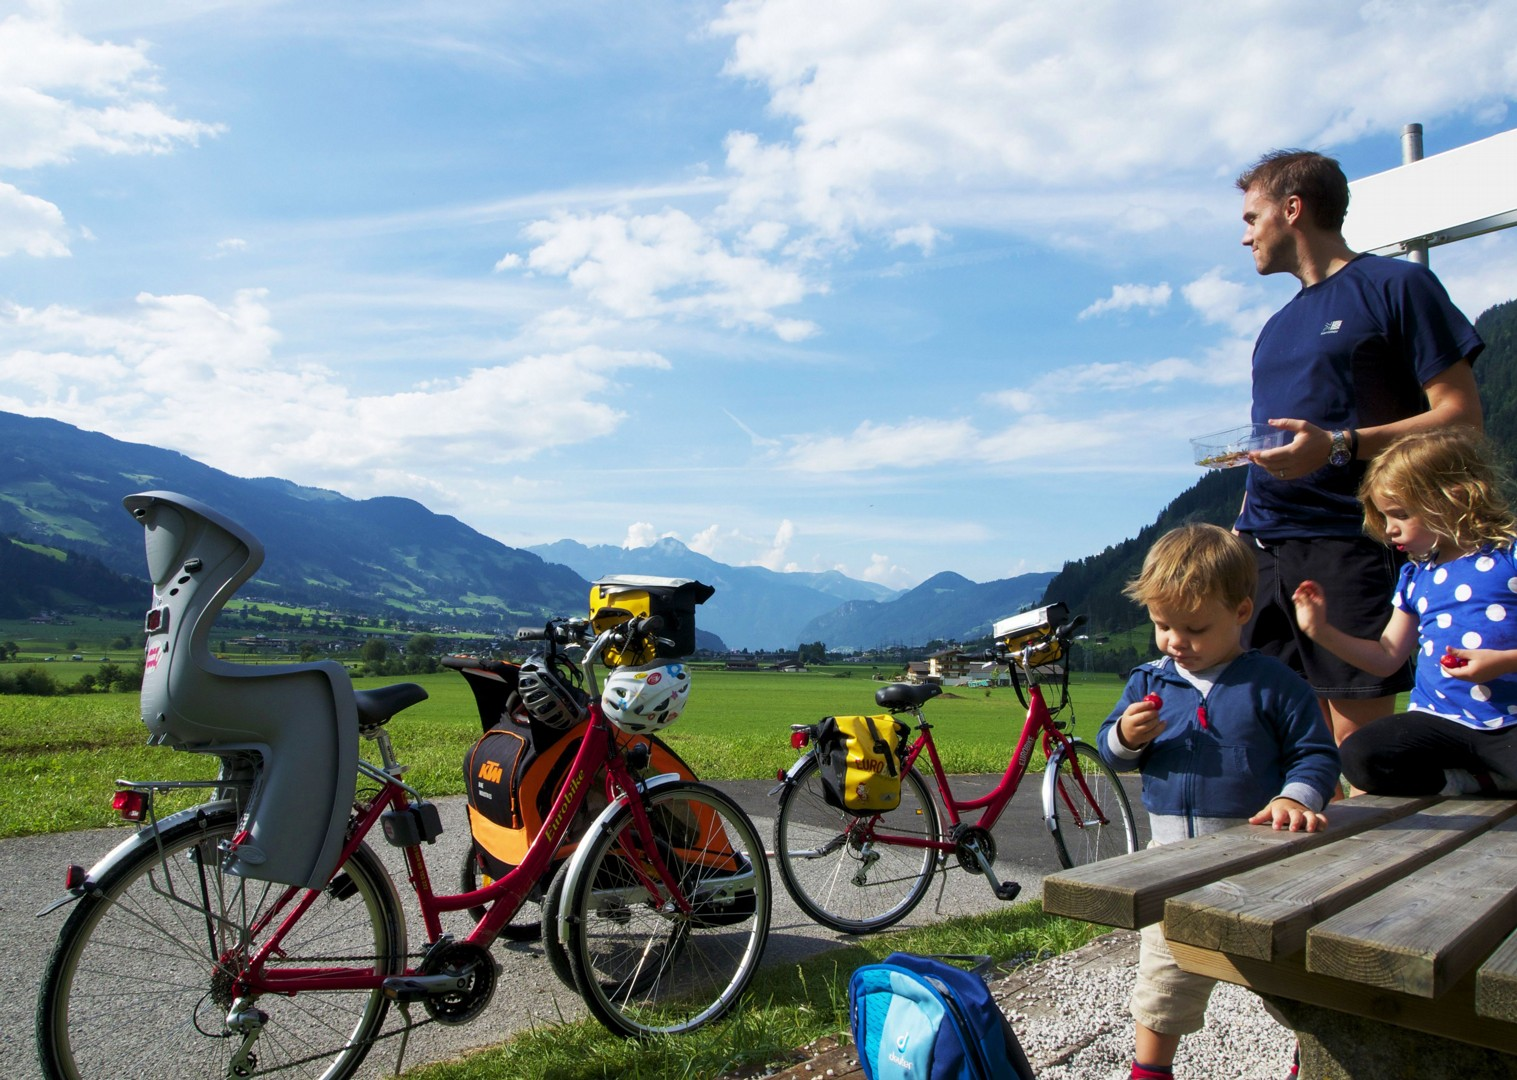 european-cycling-family-holiday-skedaddle.jpg - Austria - Tauern Valleys - Self-Guided Family Cycling Holiday - Family Cycling